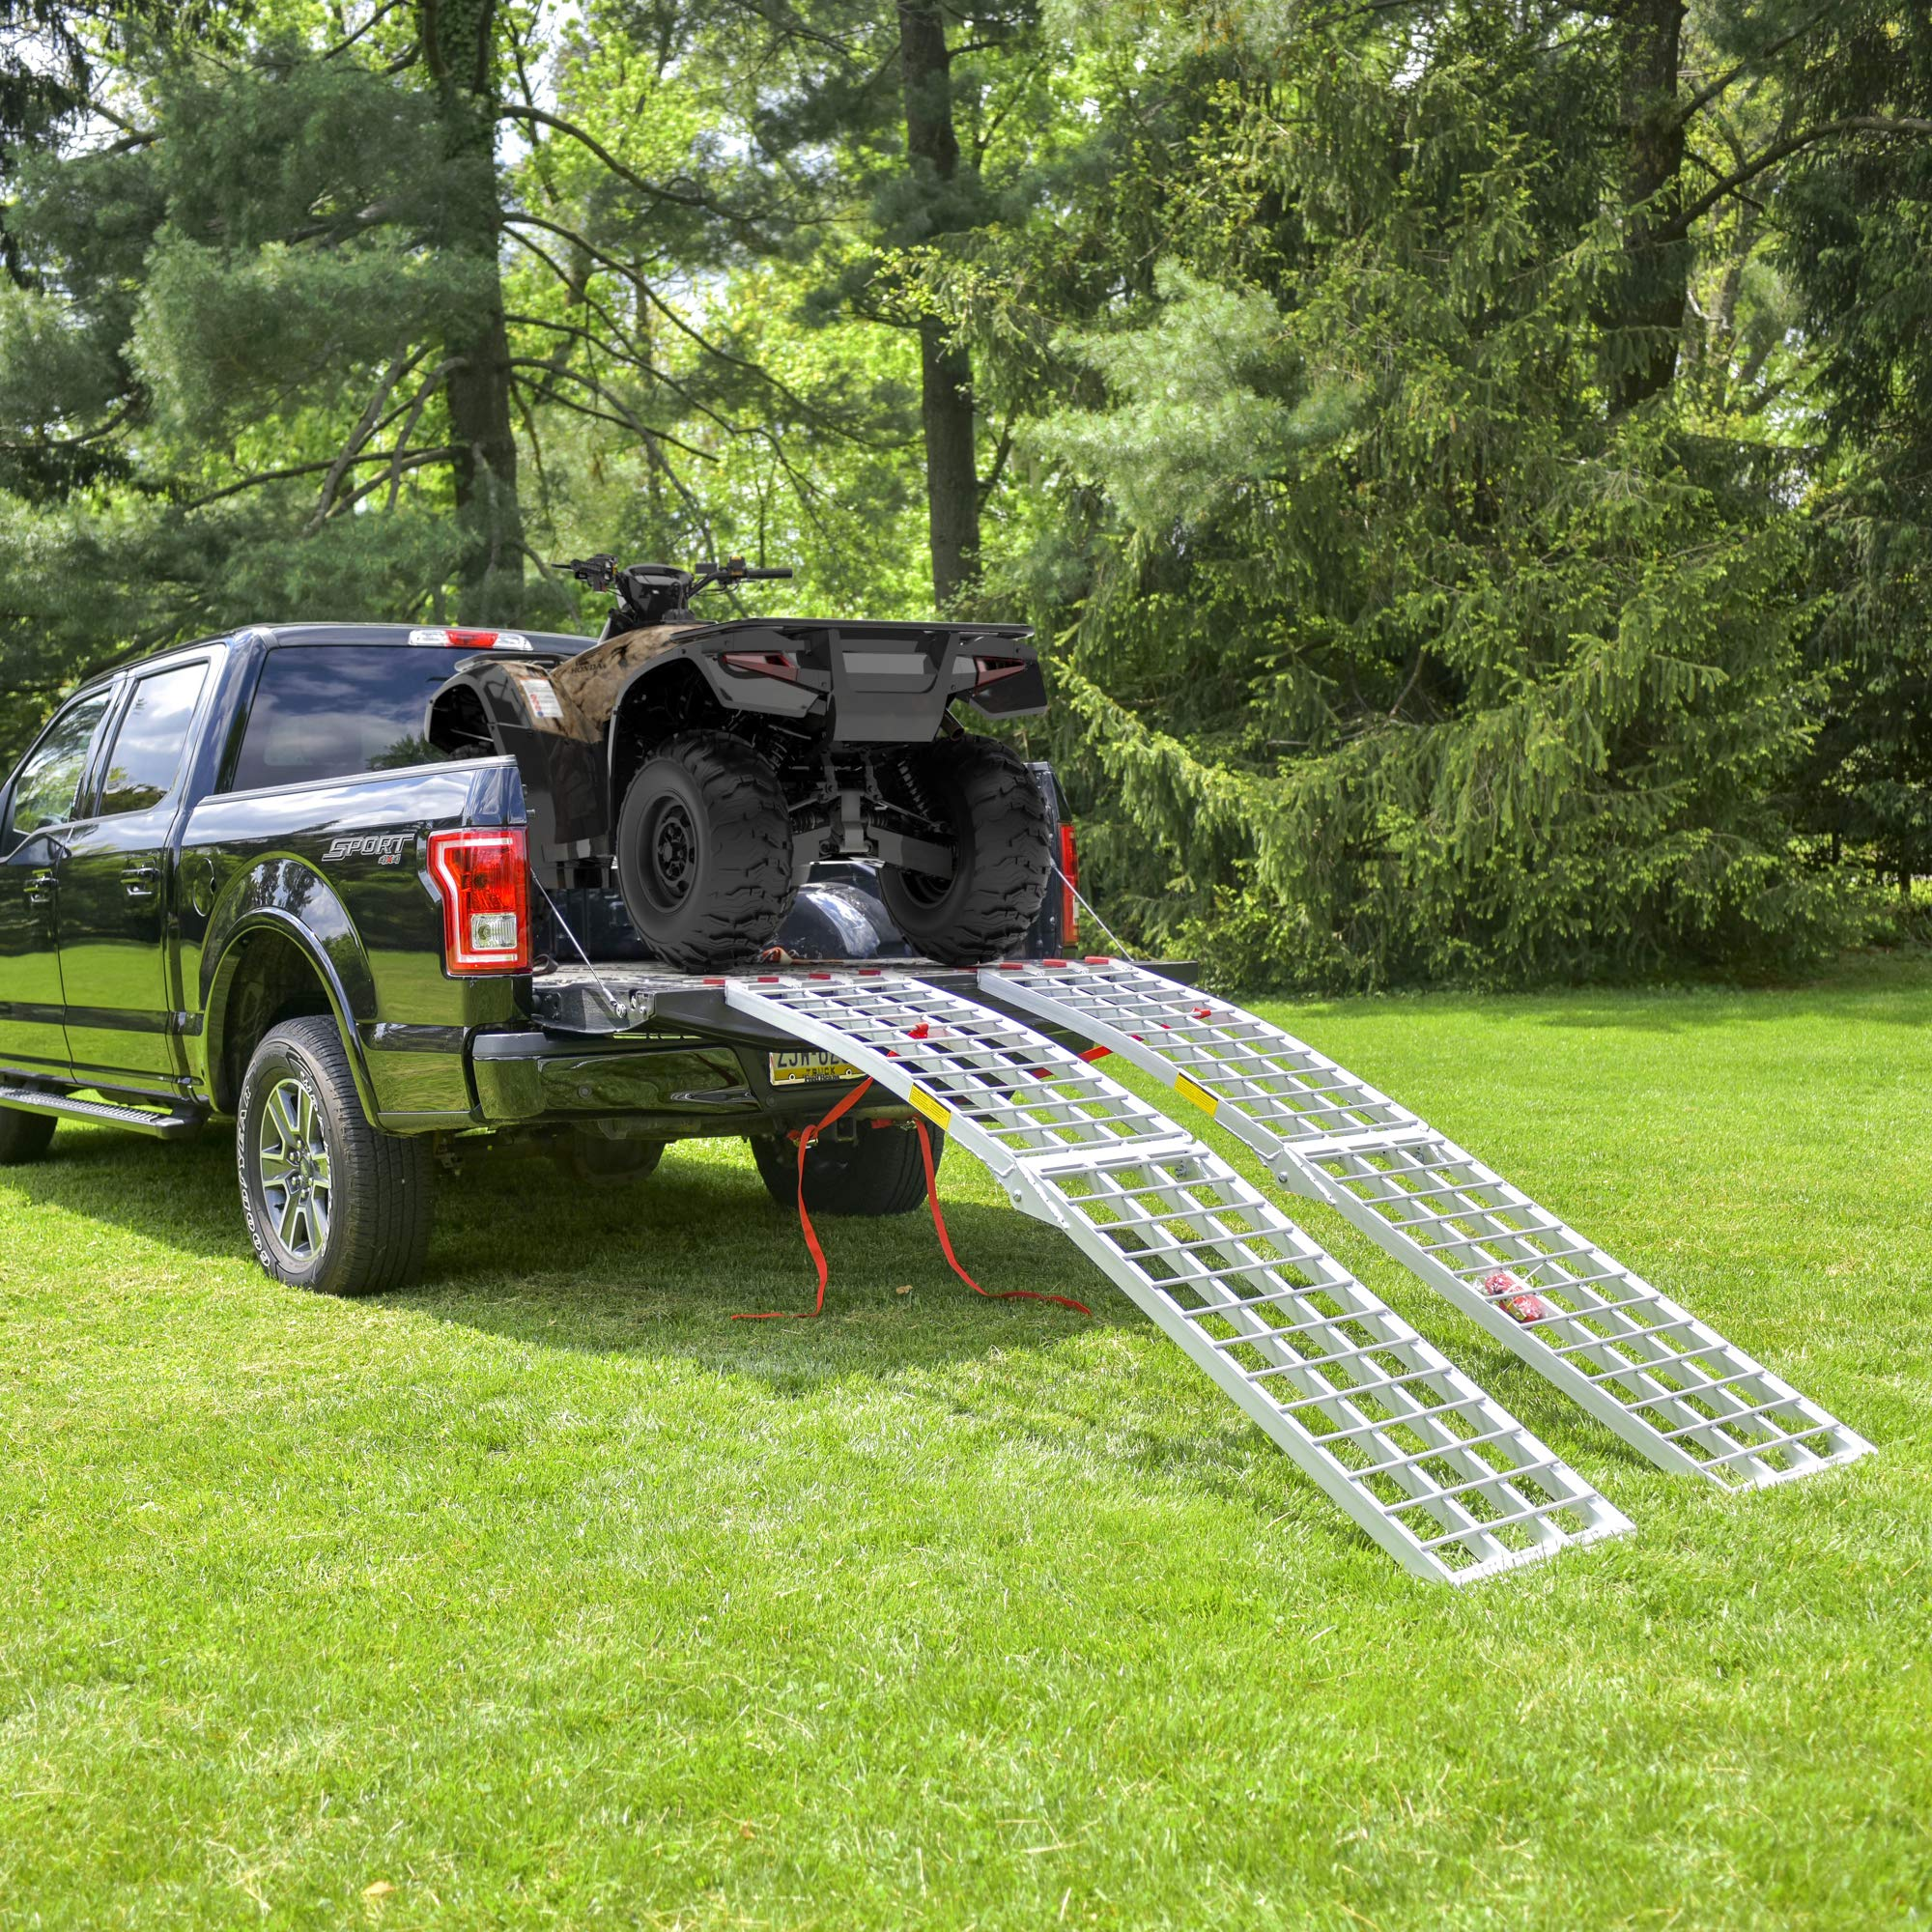 EmpireCovers Aluminum Folding ATV/UTV Ramp - 7.5' Long, 2,000 lb Weight Capacity (Sold as Pair) by EmpireCovers (Image #2)